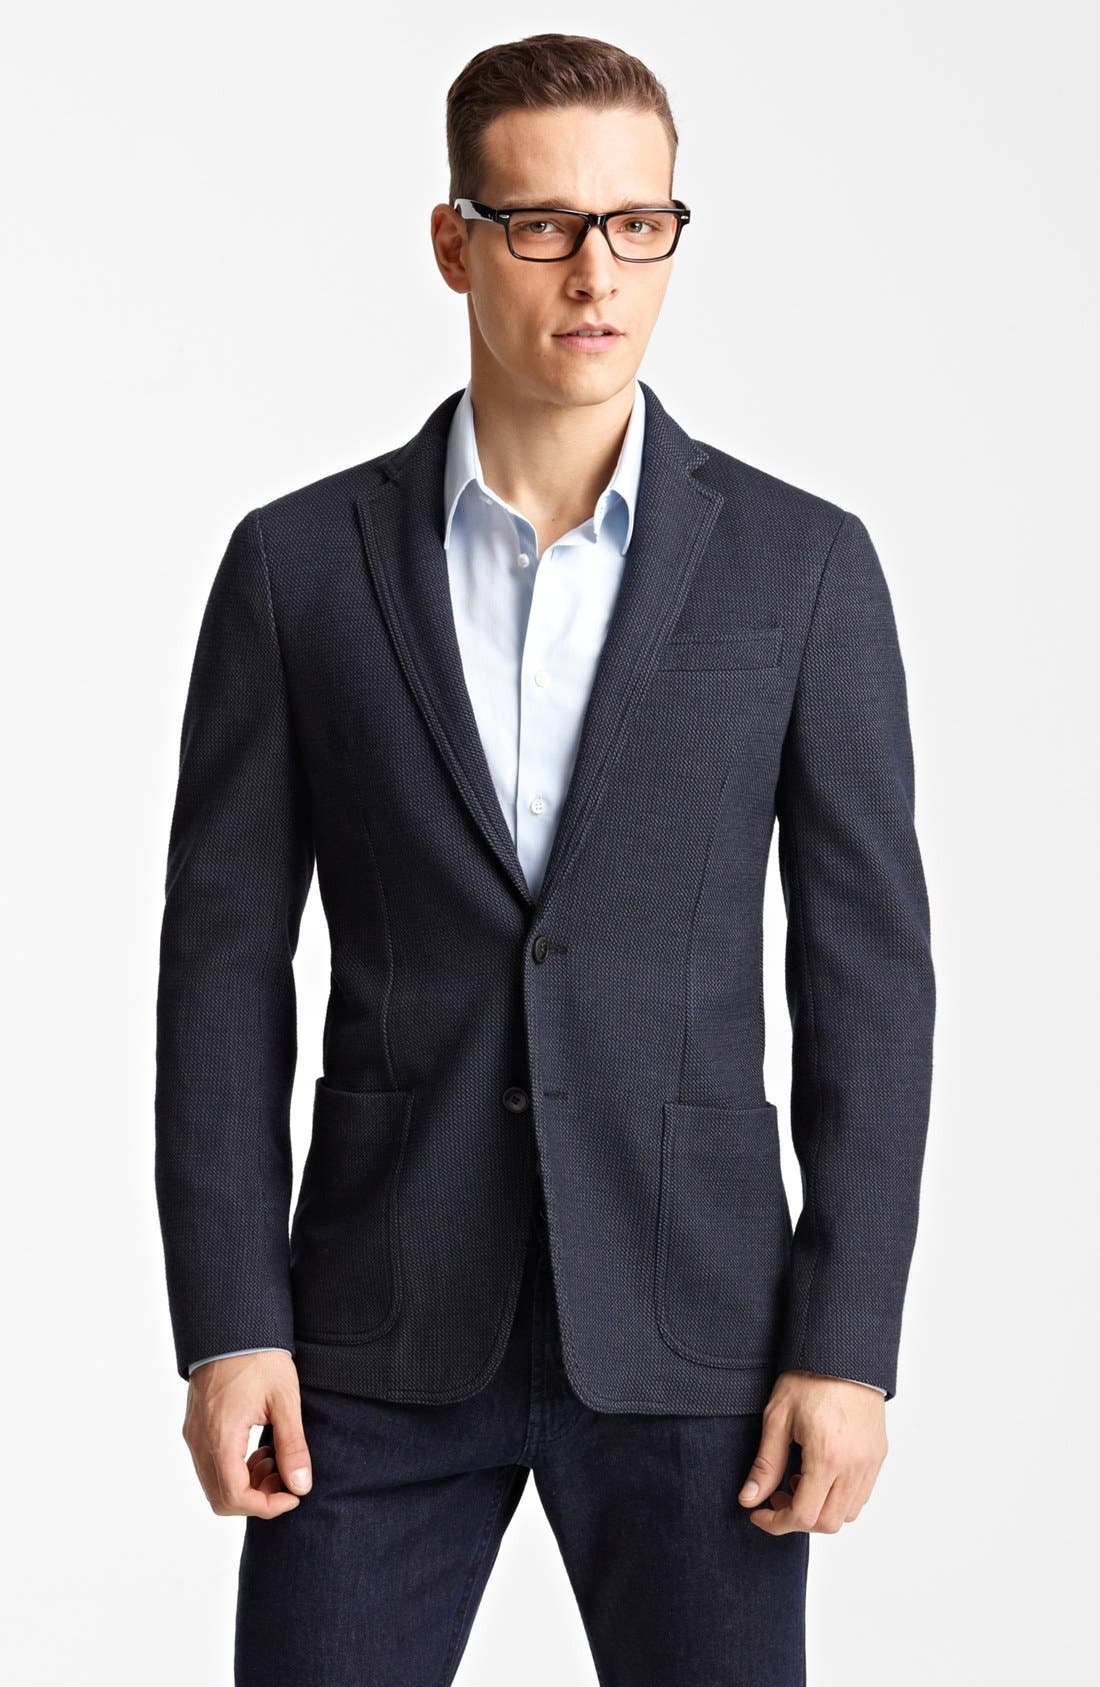 Alternate Image 1 Selected - Armani Collezioni 'Linea' Tic Weave Sportcoat